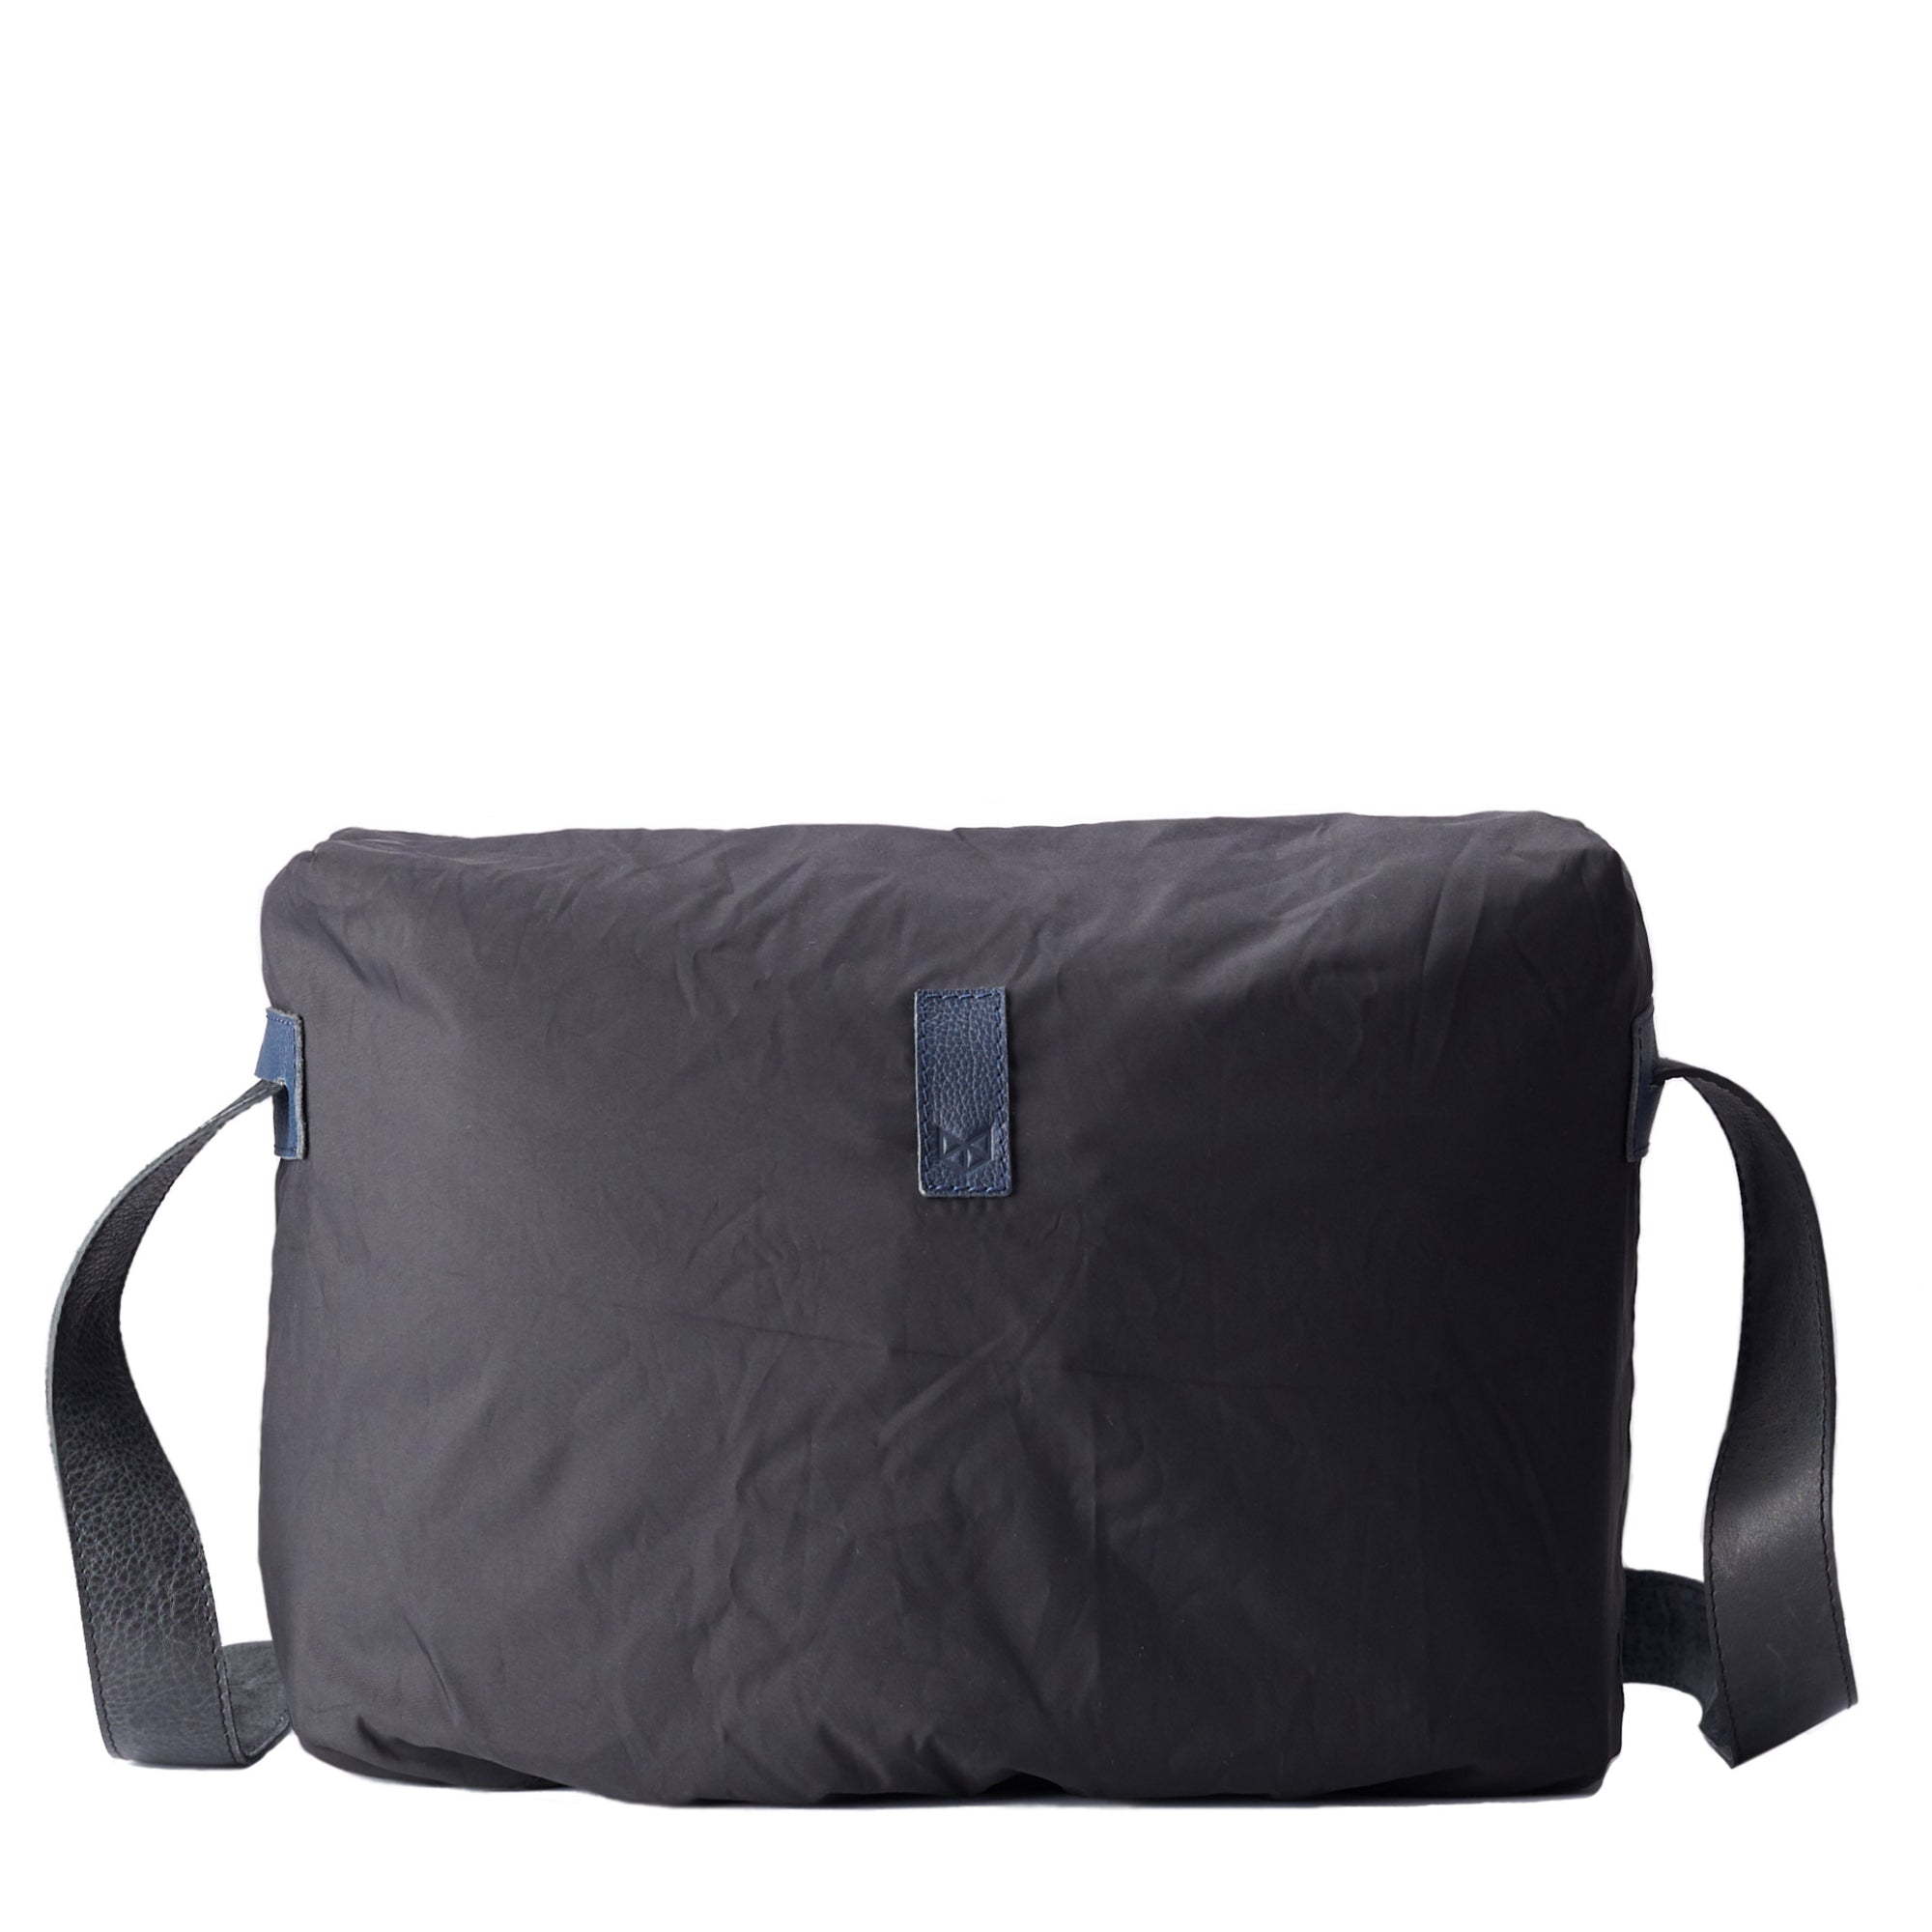 Front rain cover . Black rain cover perfect fit for all Capra messenger bags. Fashionable matte waterproof material. Leather details by Capra Leather.